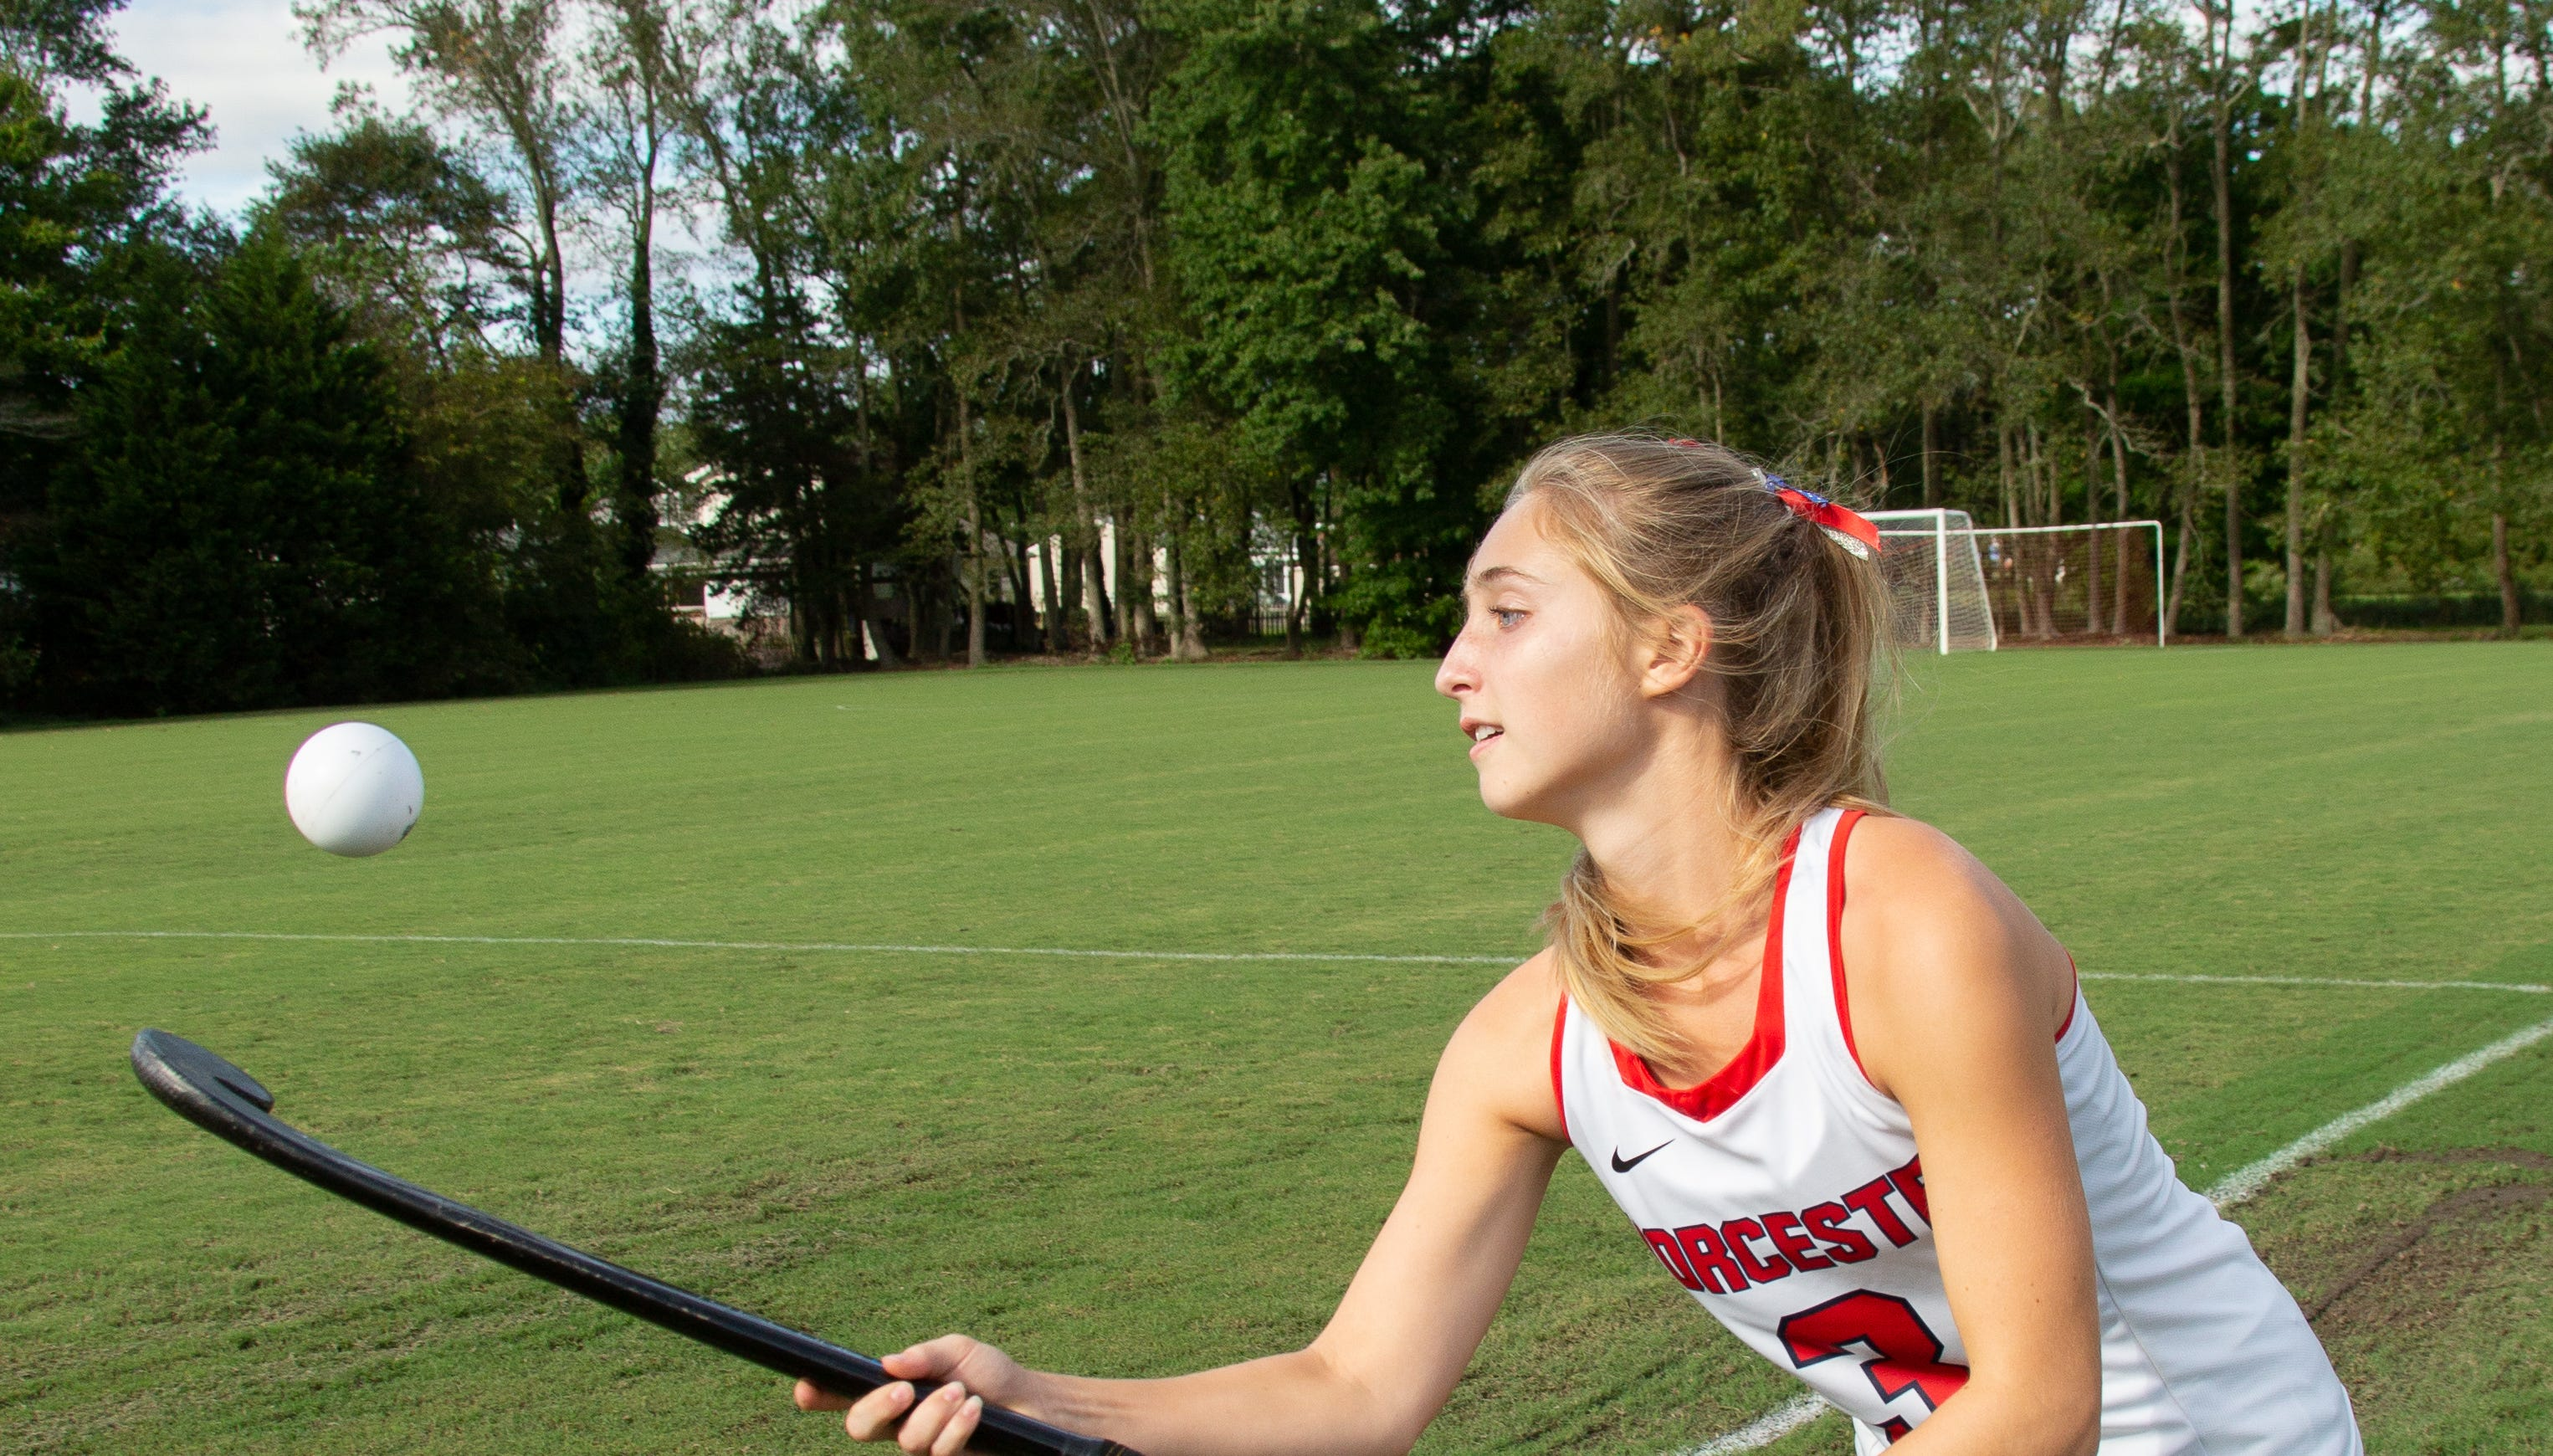 The girls Field Hockey team from Worcester Preparatory School faced off against Bennett High School.  Hailee Arrington #3 is a senior playing for Worcester Preparatory School in Berlin Maryland.